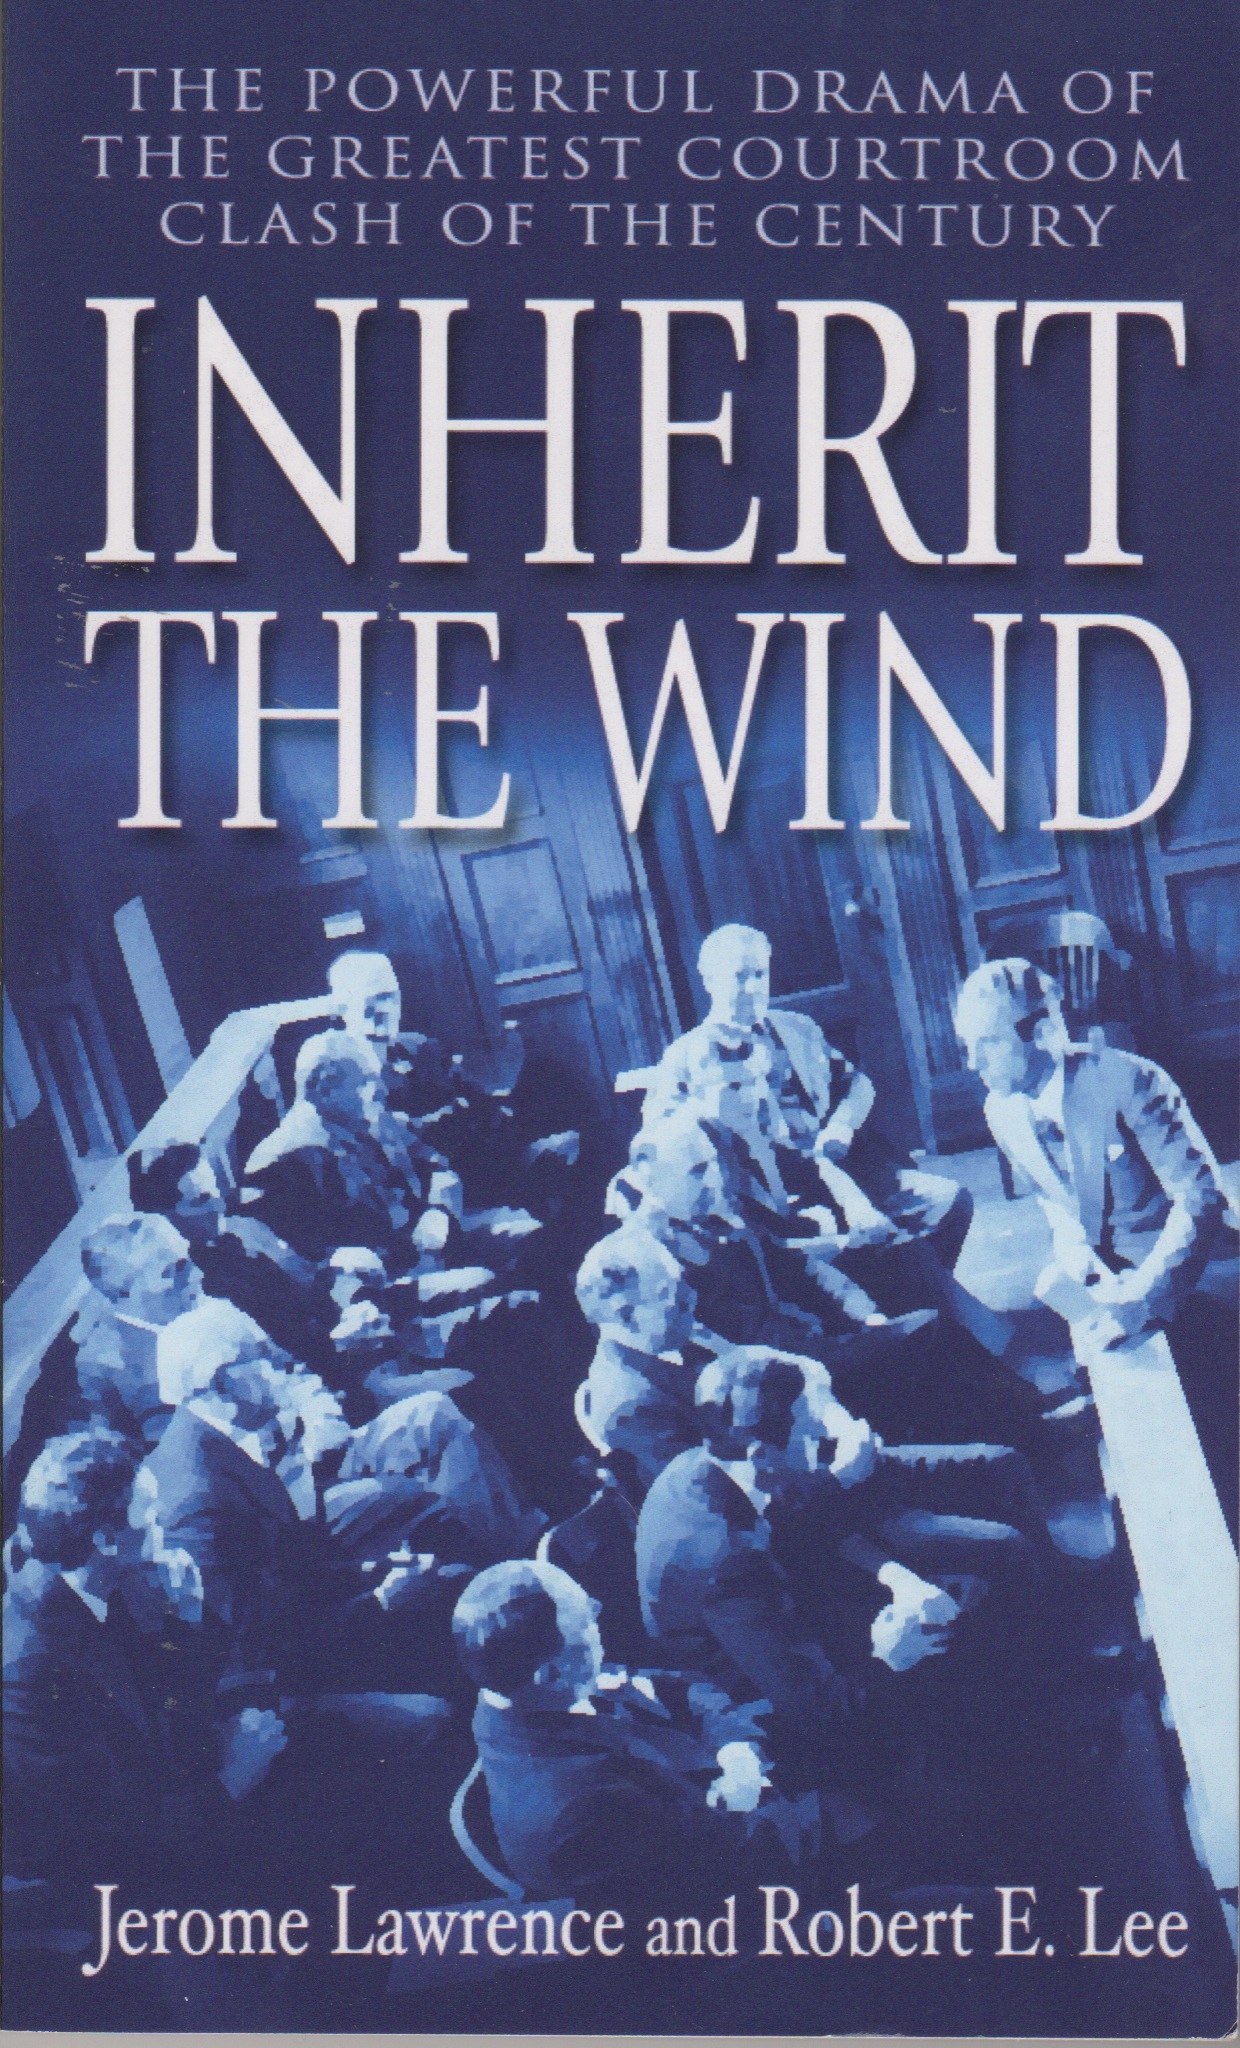 unjust laws in inherit the wind by lee and lawrence and the crucible by miller Inherit the wind, being revived in new york this week, is the theatrical equivalent of such a in inherit the wind, scopes becomes bertram cates, while bryan and darrow are lightly fictionalised like arthur miller's the crucible two years earlier, inherit the wind found metaphors in history to.